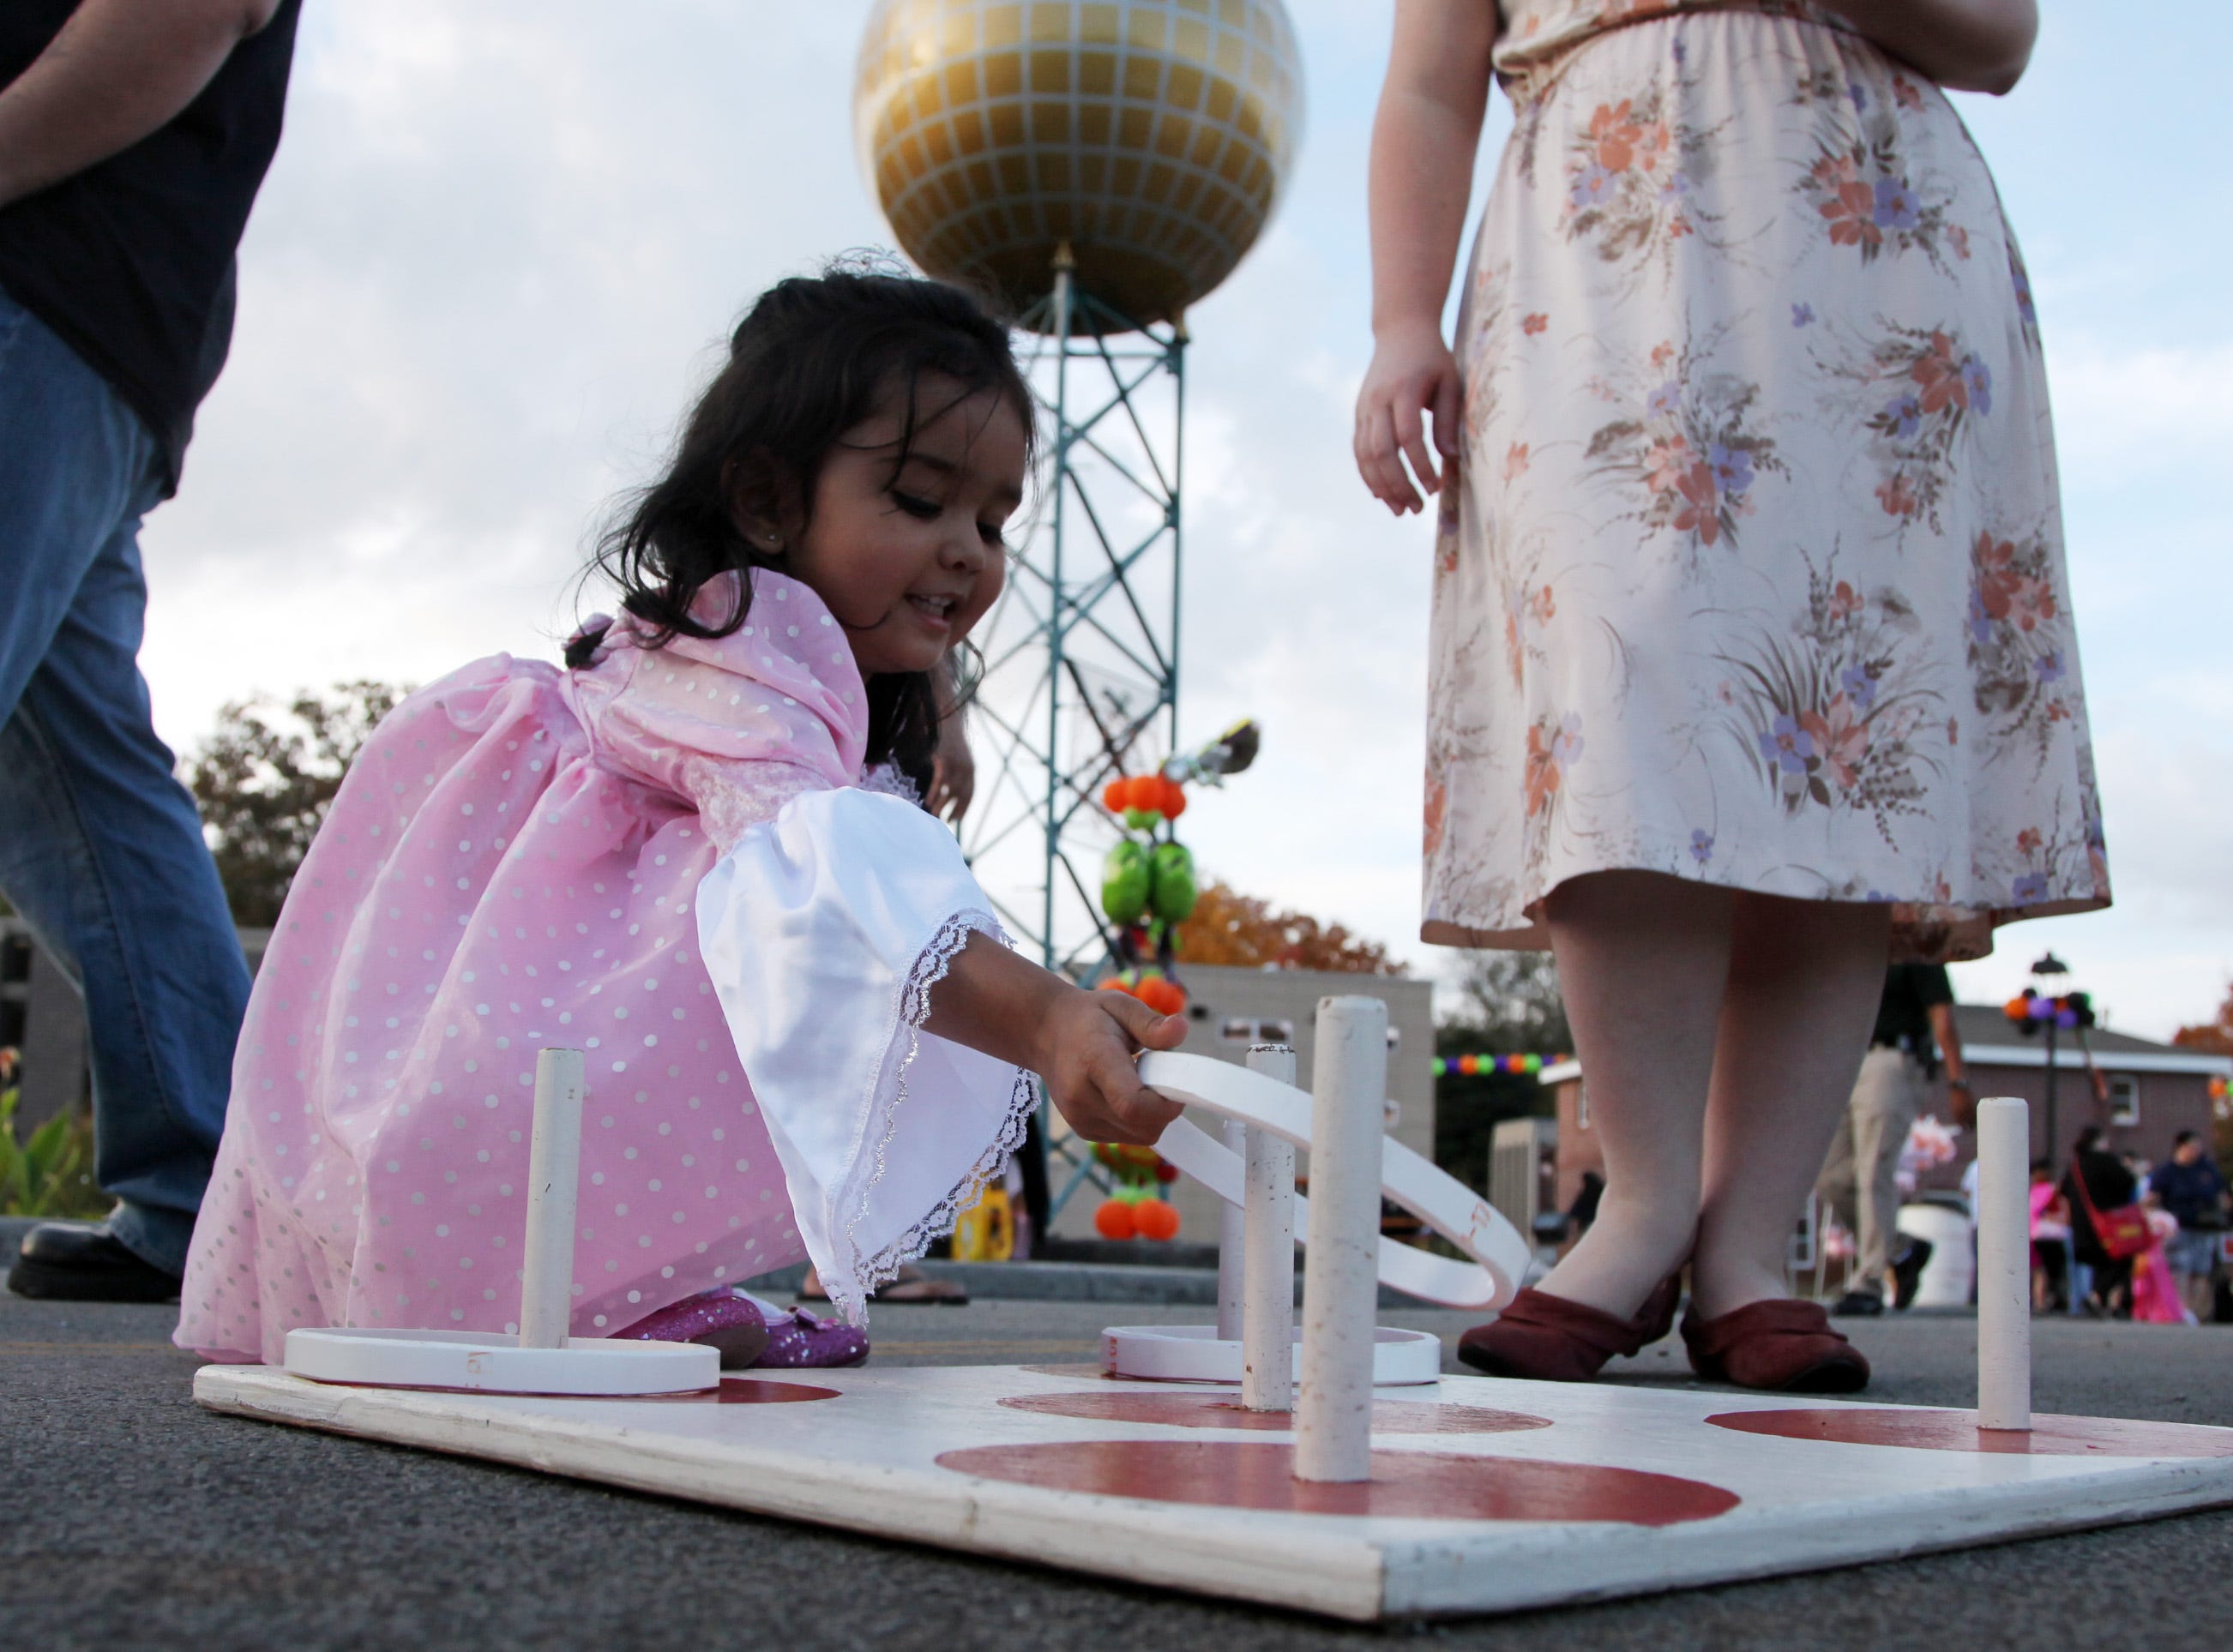 Aisha Patel (cq), 2, plays a ring game during the Knoxville Police Department's Halloween in the City at Safety City Friday, Oct. 30, 2009.